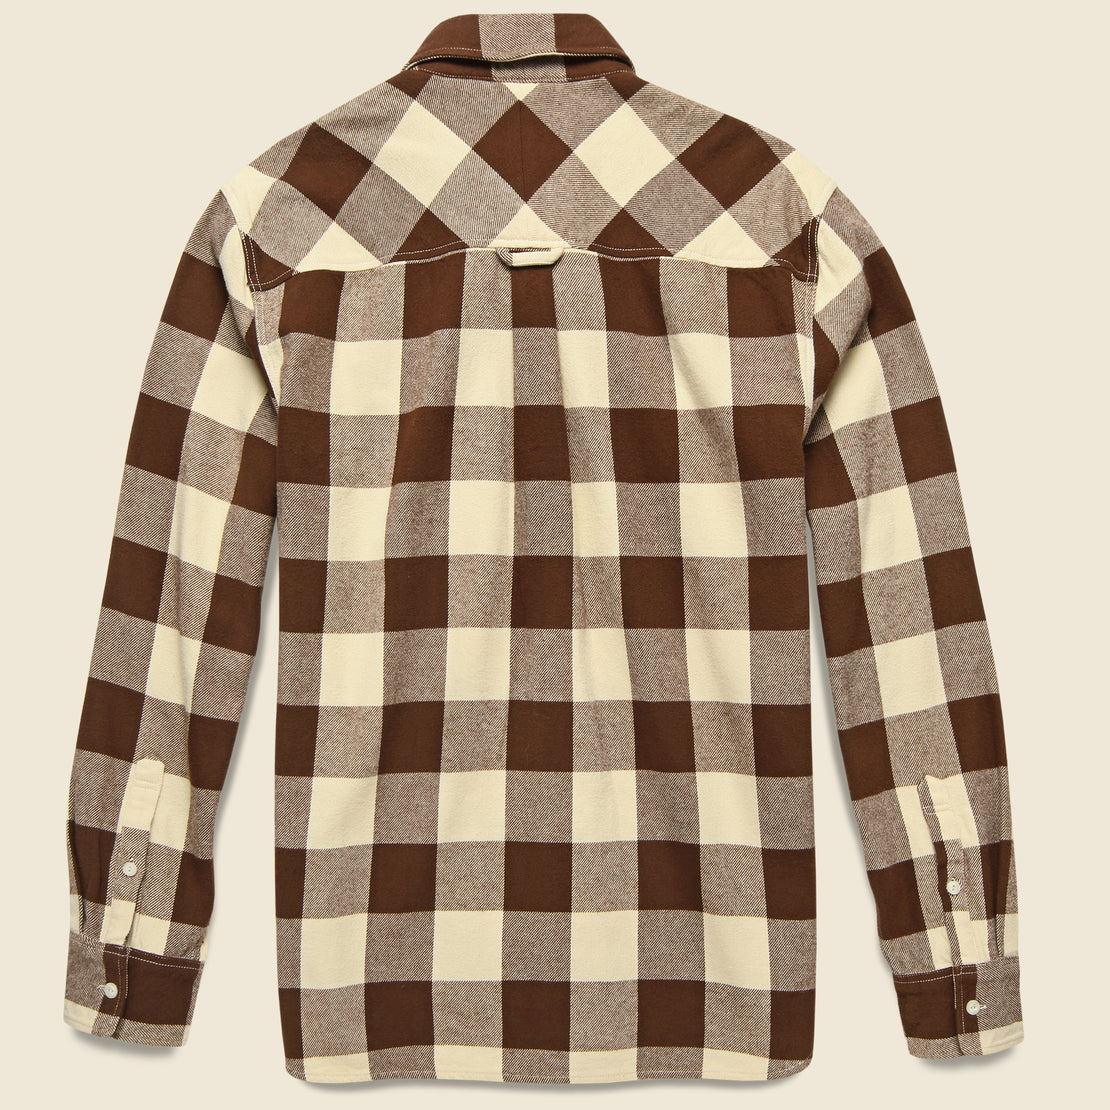 Blackmer Buffalo Shirt - Ecru